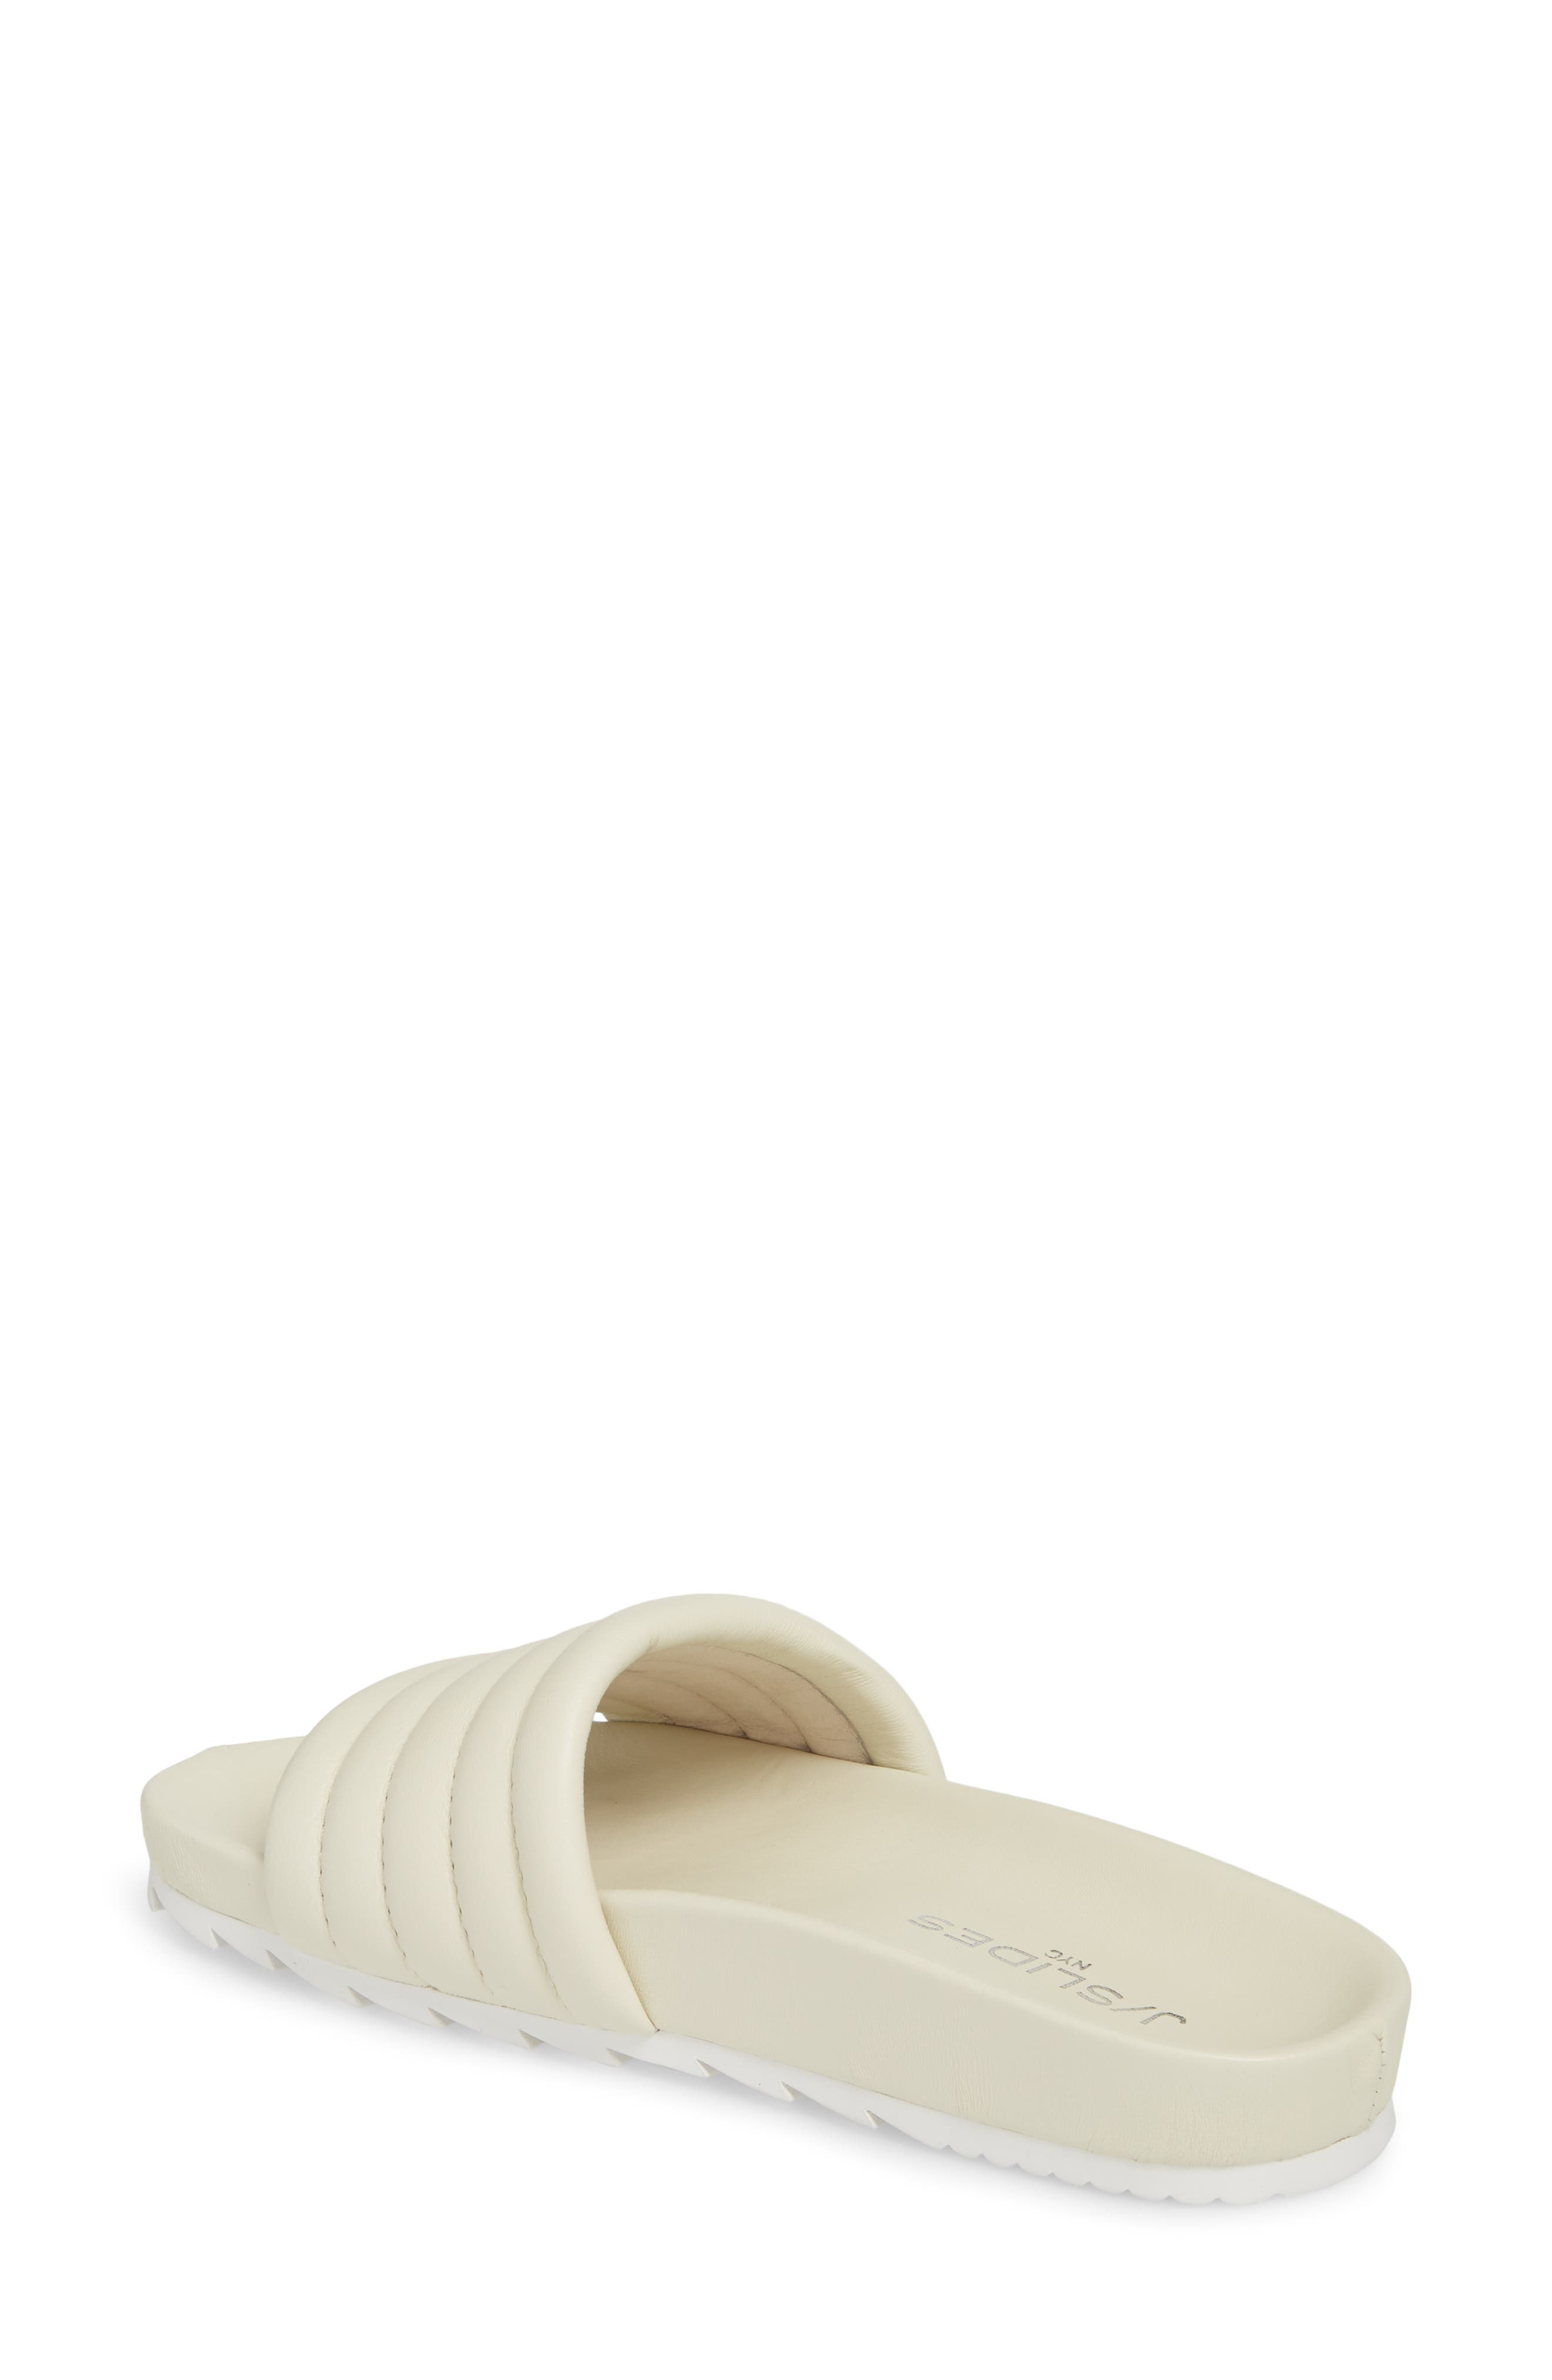 JSLIDES, Eppie Slide Sandal, Alternate thumbnail 2, color, OFF WHITE LEATHER